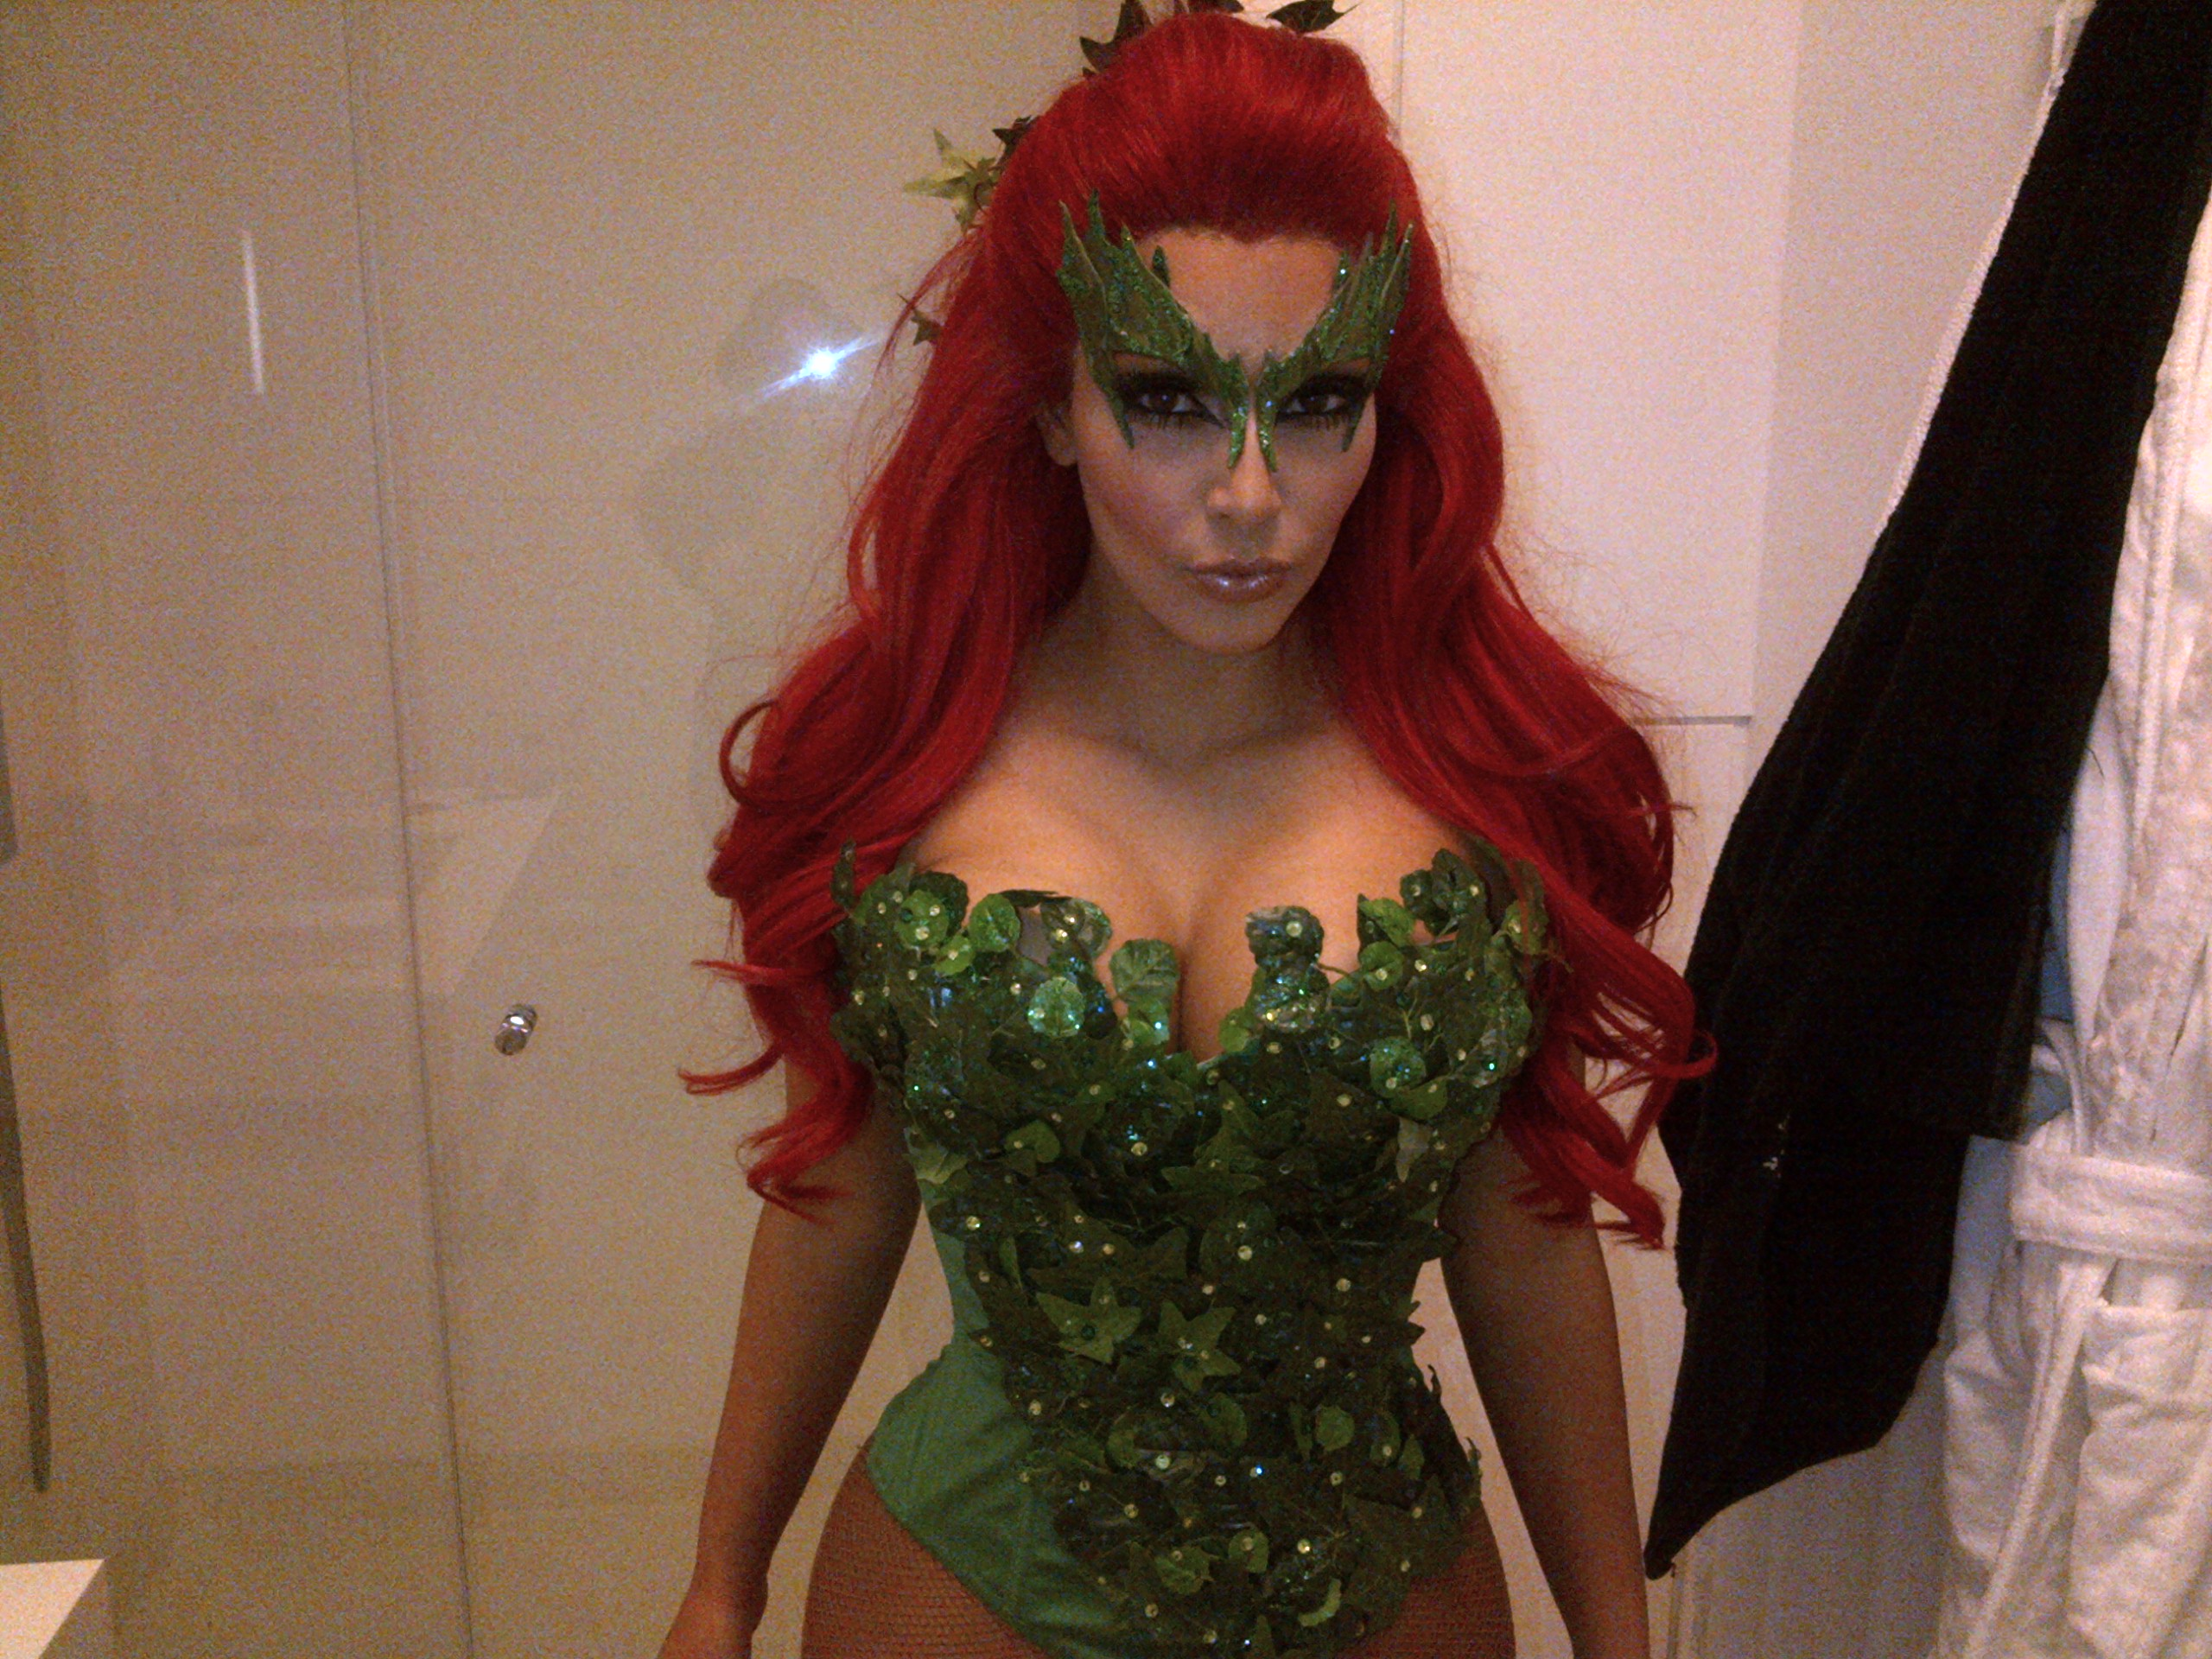 Kim Kardashian Poison Ivy You Know What Makes Perfect Sense?